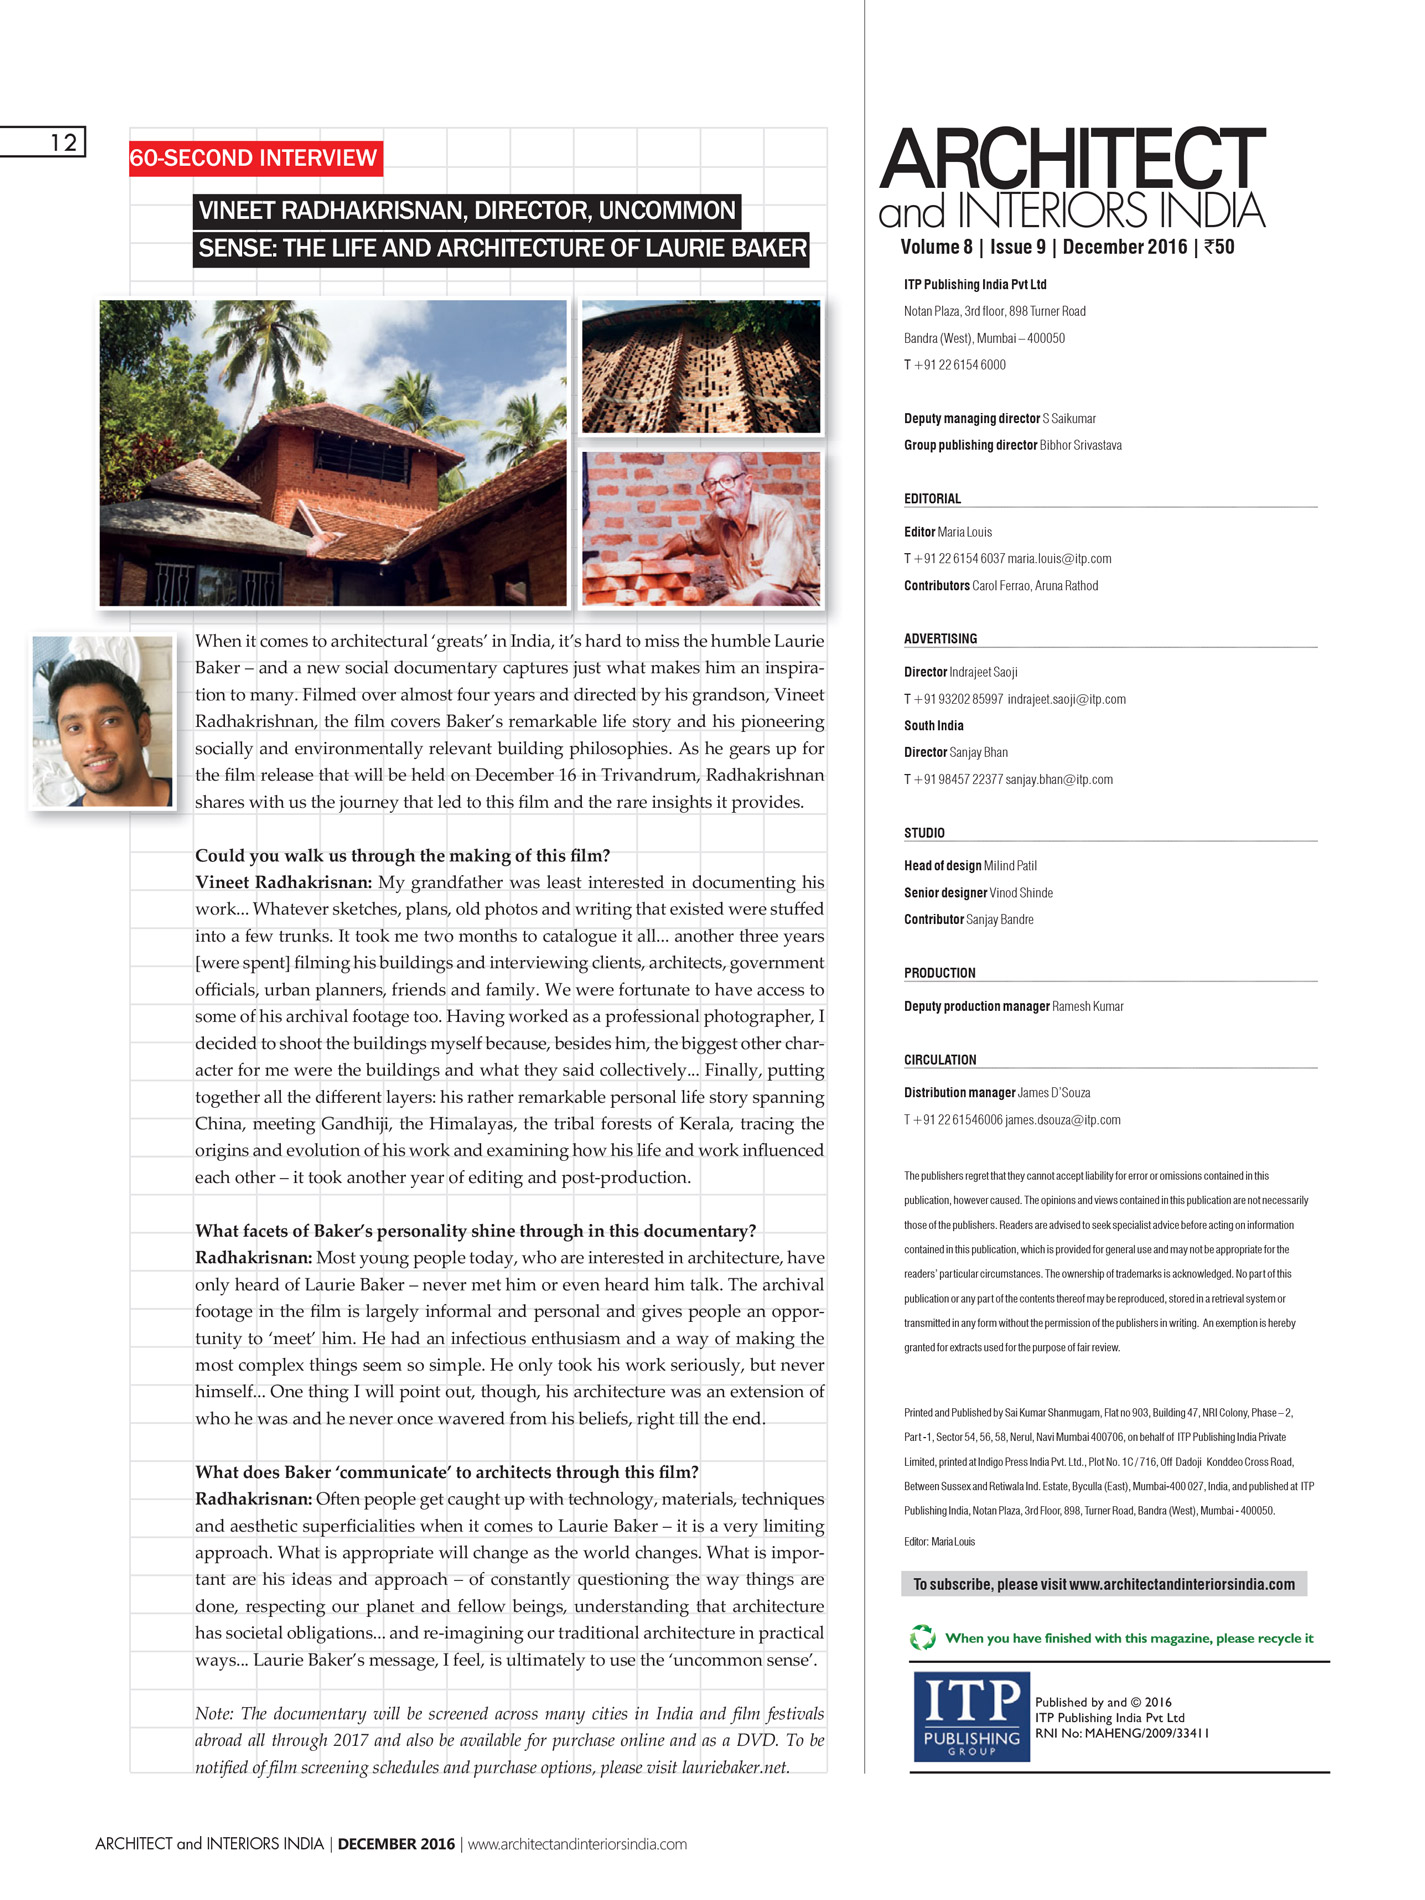 Architect and Interiors India Film Interview